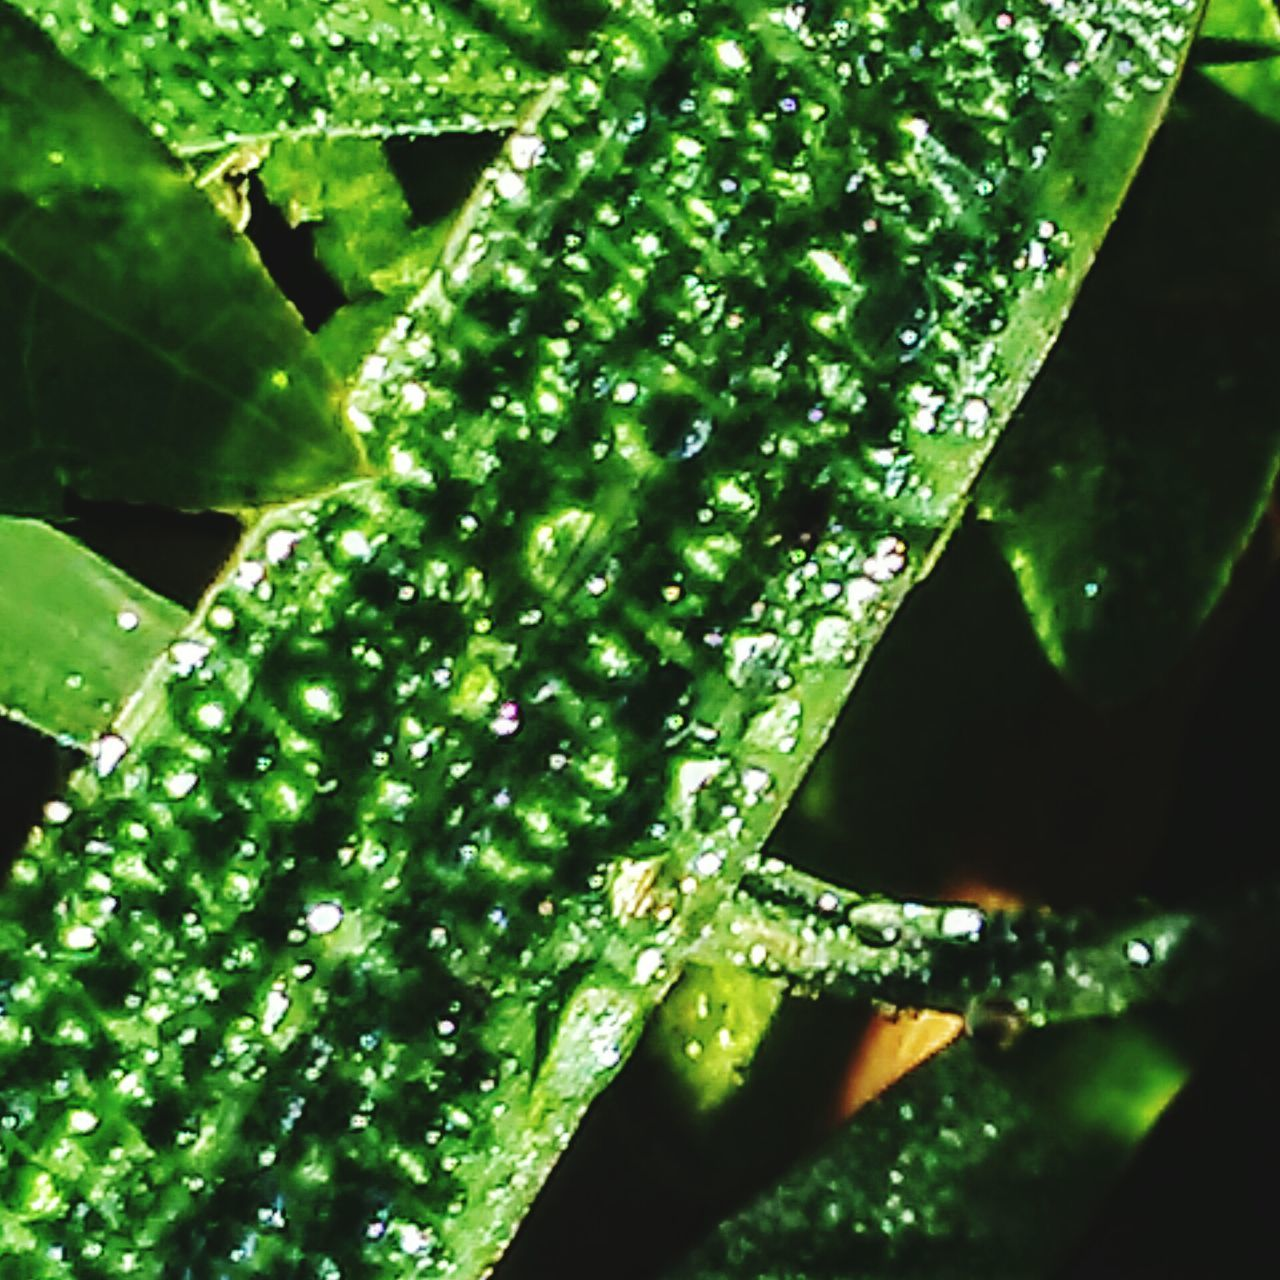 green color, leaf, nature, drop, water, freshness, beauty in nature, growth, plant, close-up, no people, day, wet, outdoors, fragility, raindrop